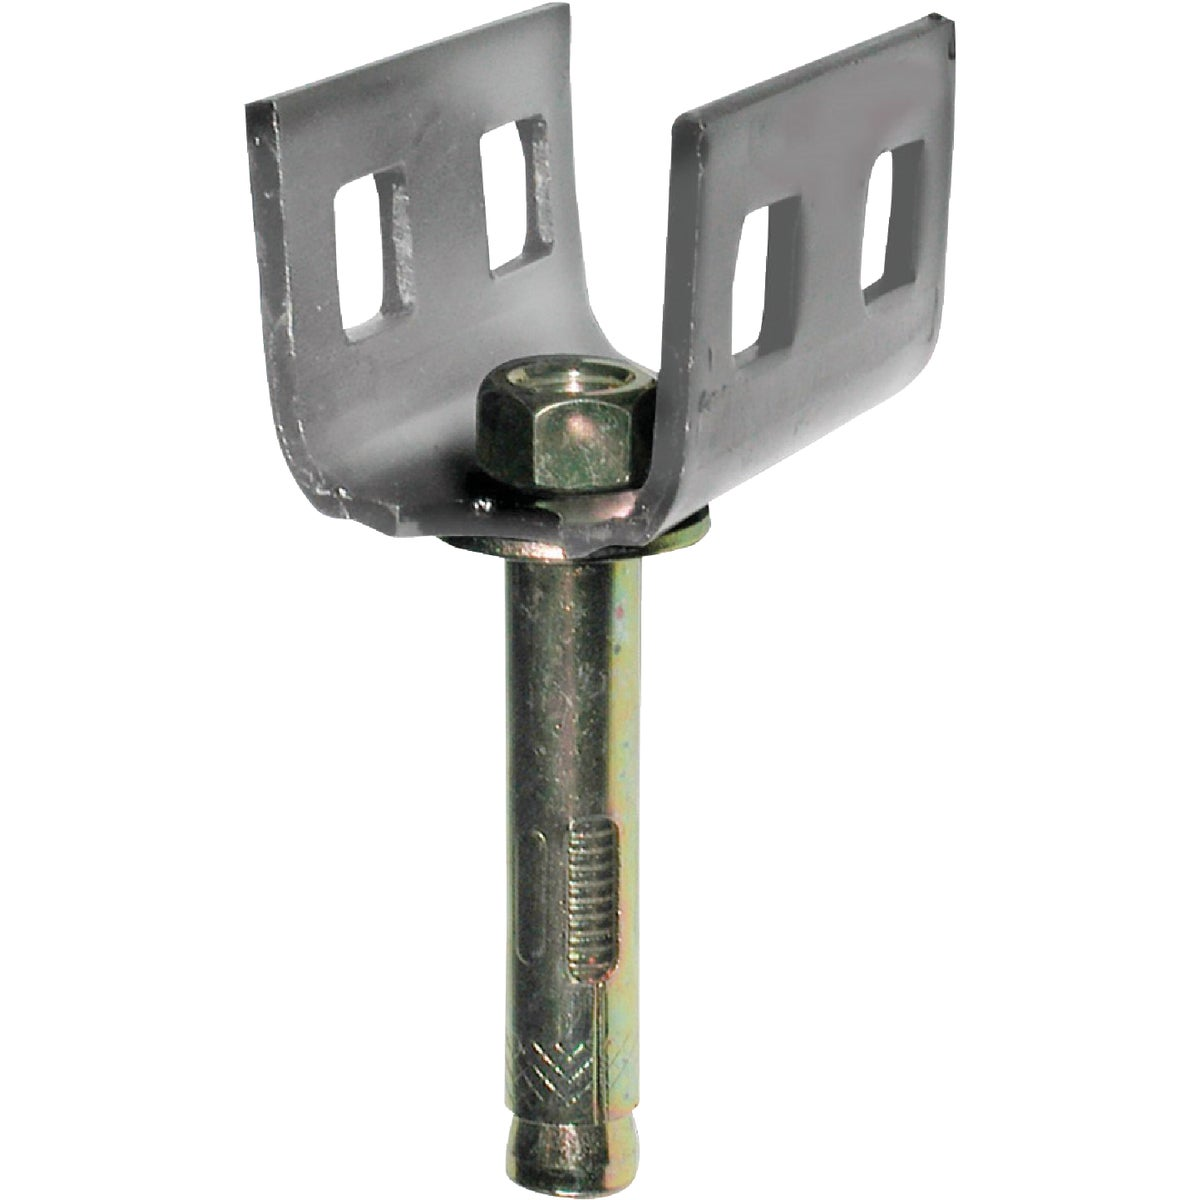 GLV(W/BIT)CC SLAB ANCHOR - 59124L by Tie Down Engineering